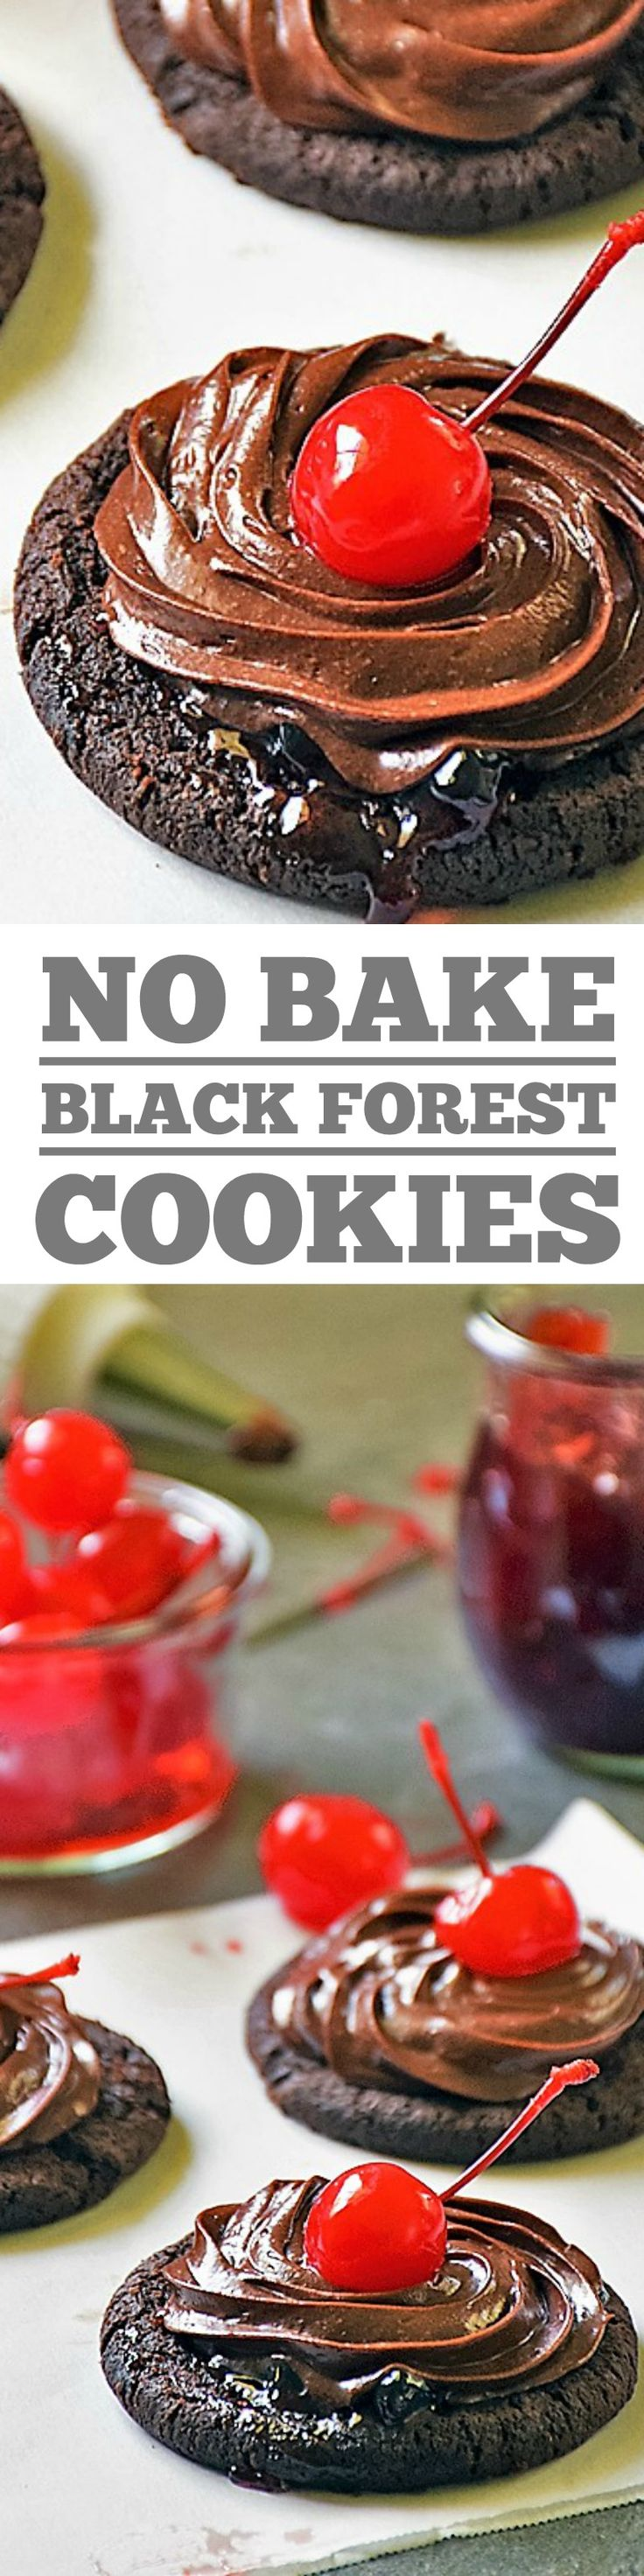 All the chocolaty cherry goodness of a Black Forest Cake, without all the work! Perfect for Christmas!! Black Forest Cookies are the EASIEST holiday cookies you'll ever make, because you don't actually have to make them! It's true! These are NO BAKE cookies, y'all!